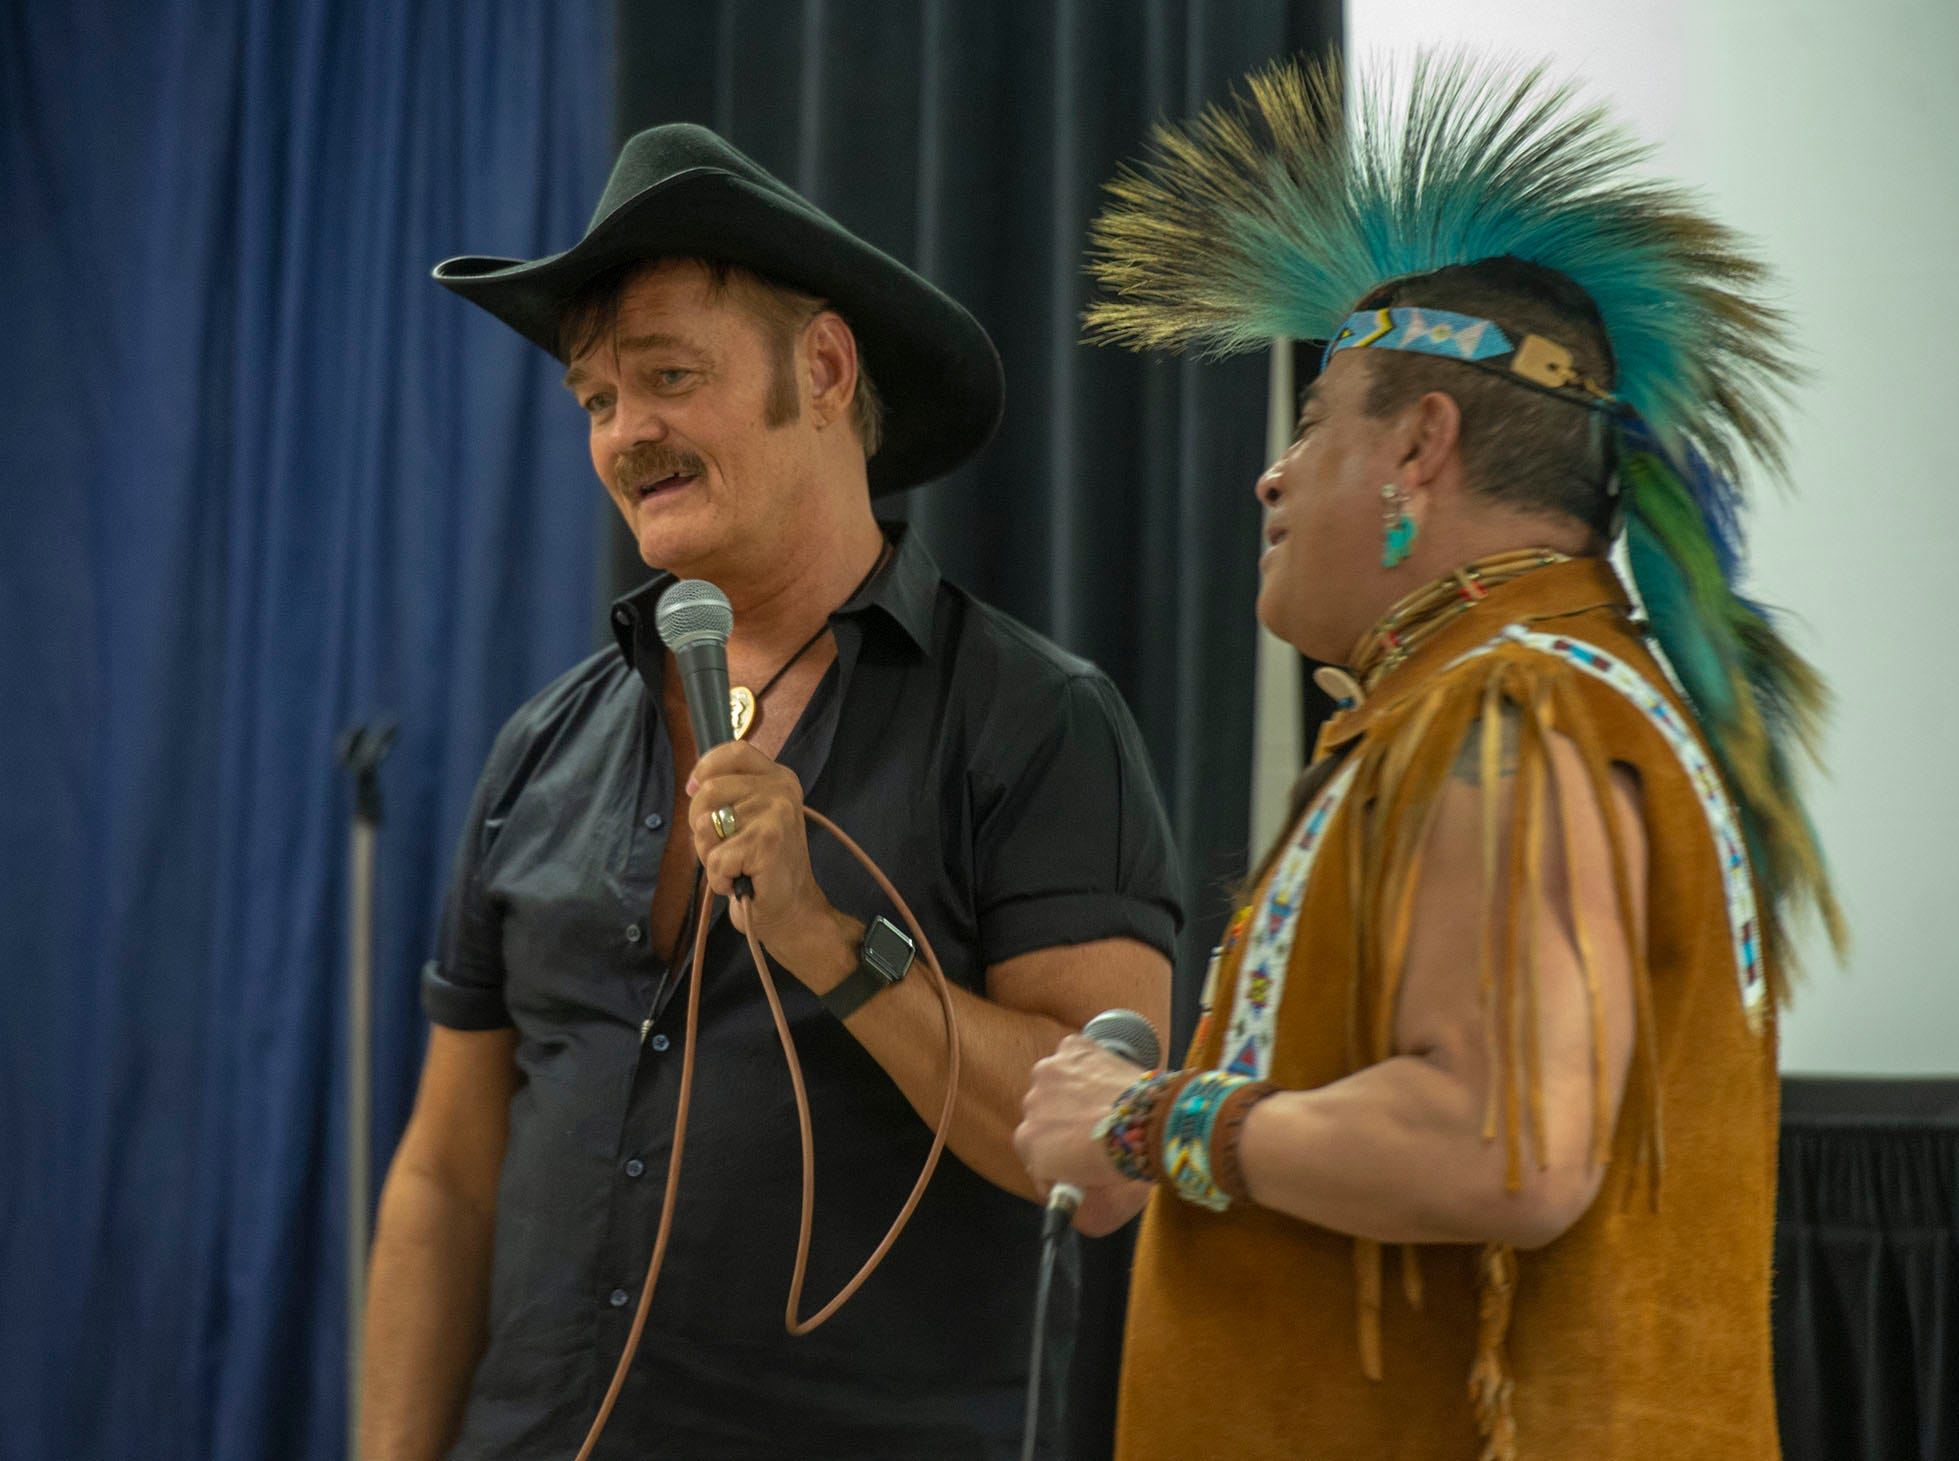 Randy Jones used a medley of Village People songs to introduce bandmate Felipe Rose to the fans Saturday night. The duo performed at the White Rose Comic Con, which runs through Sunday, March 24, 2019 at Utz Arena of the York Fairgrounds.